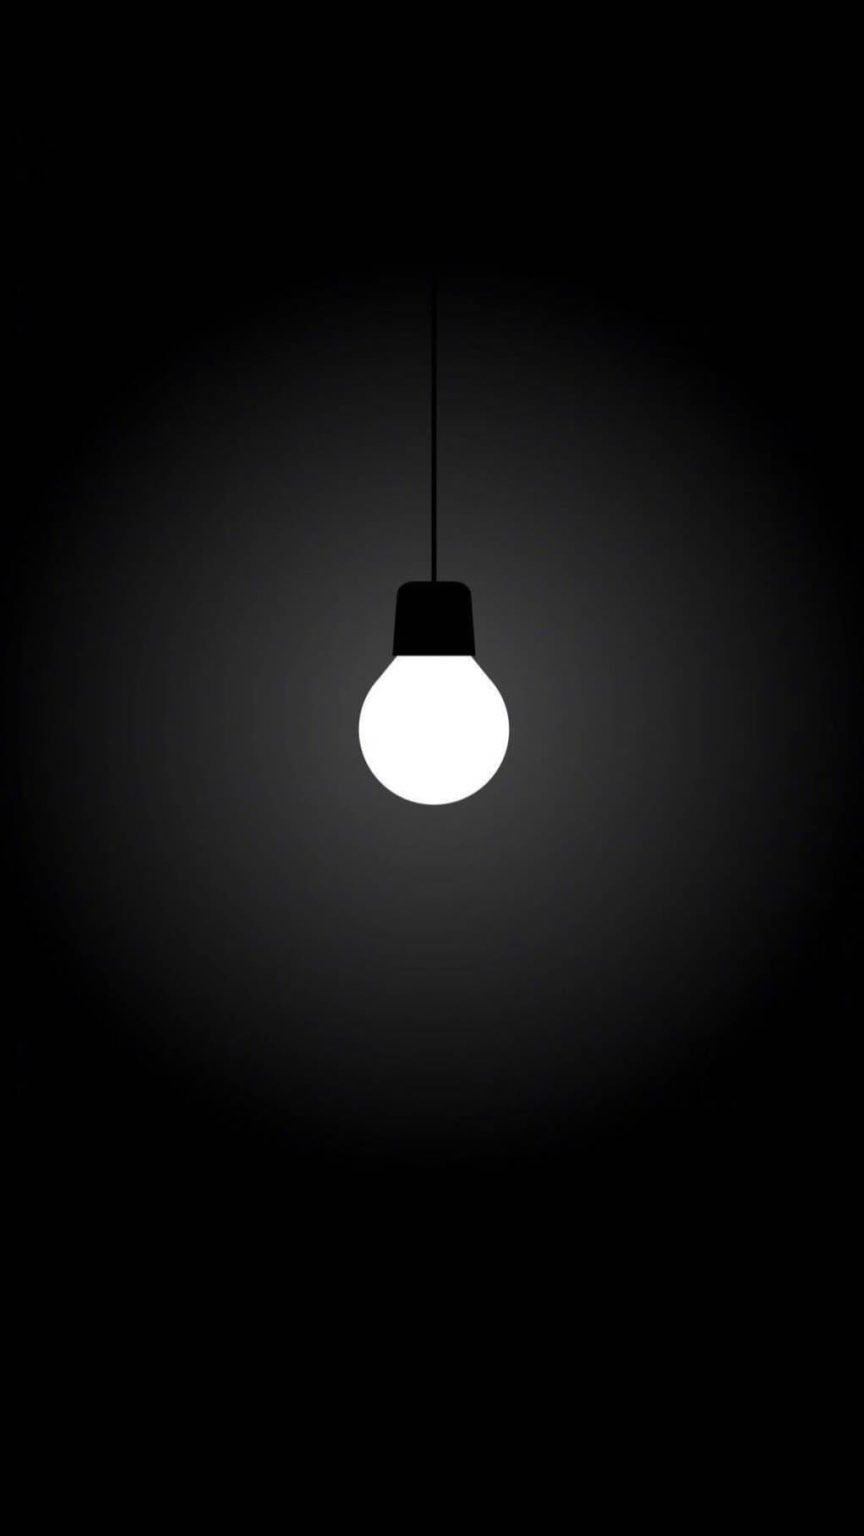 50 خلفية سوداء للايفون Minimalist Wallpaper Dark Wallpaper Black Wallpaper